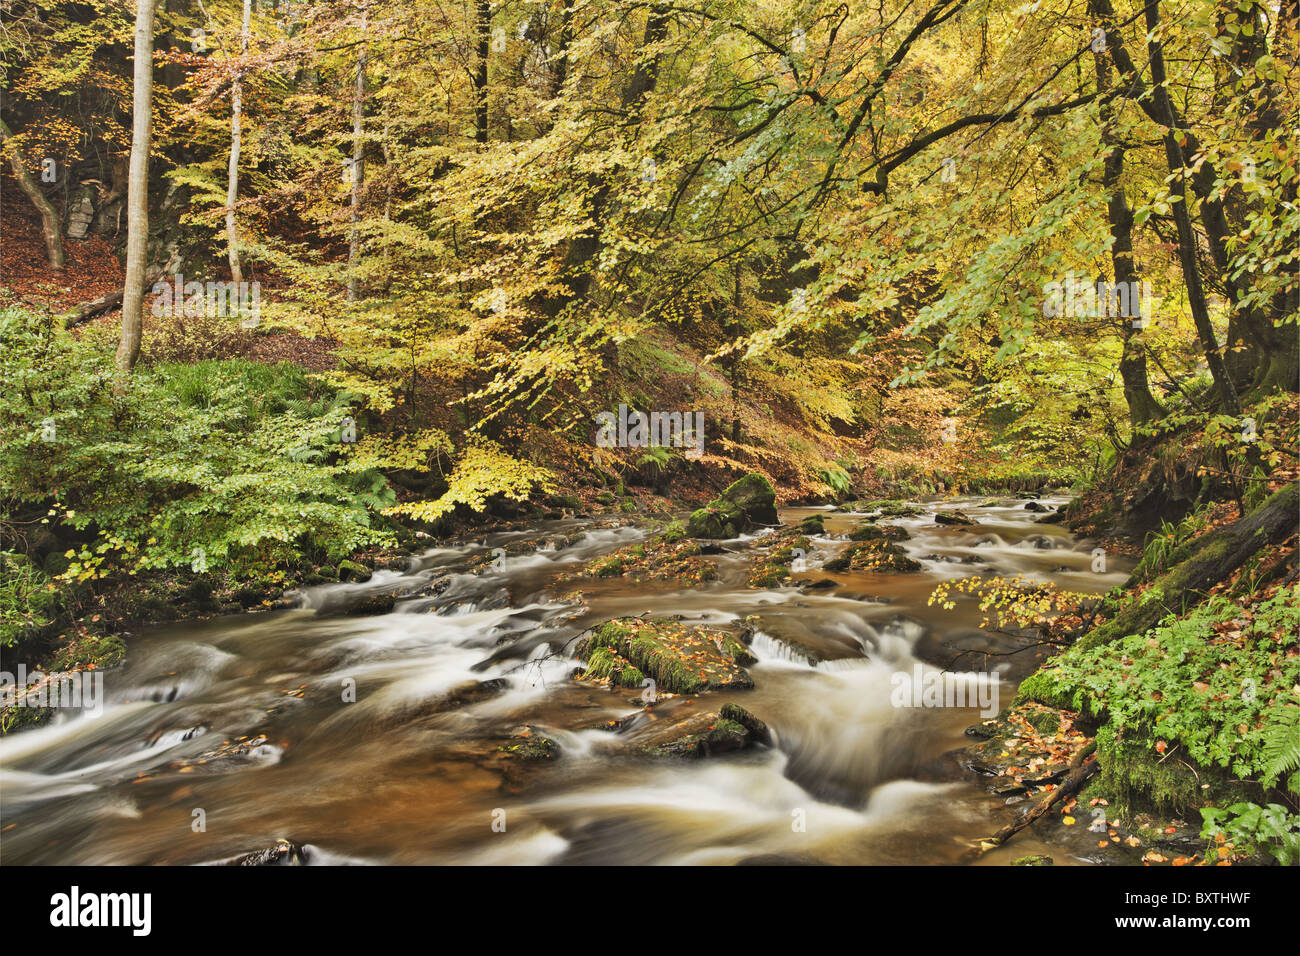 Autumn leaves cover the trees along a stream in Scotland. - Stock Image